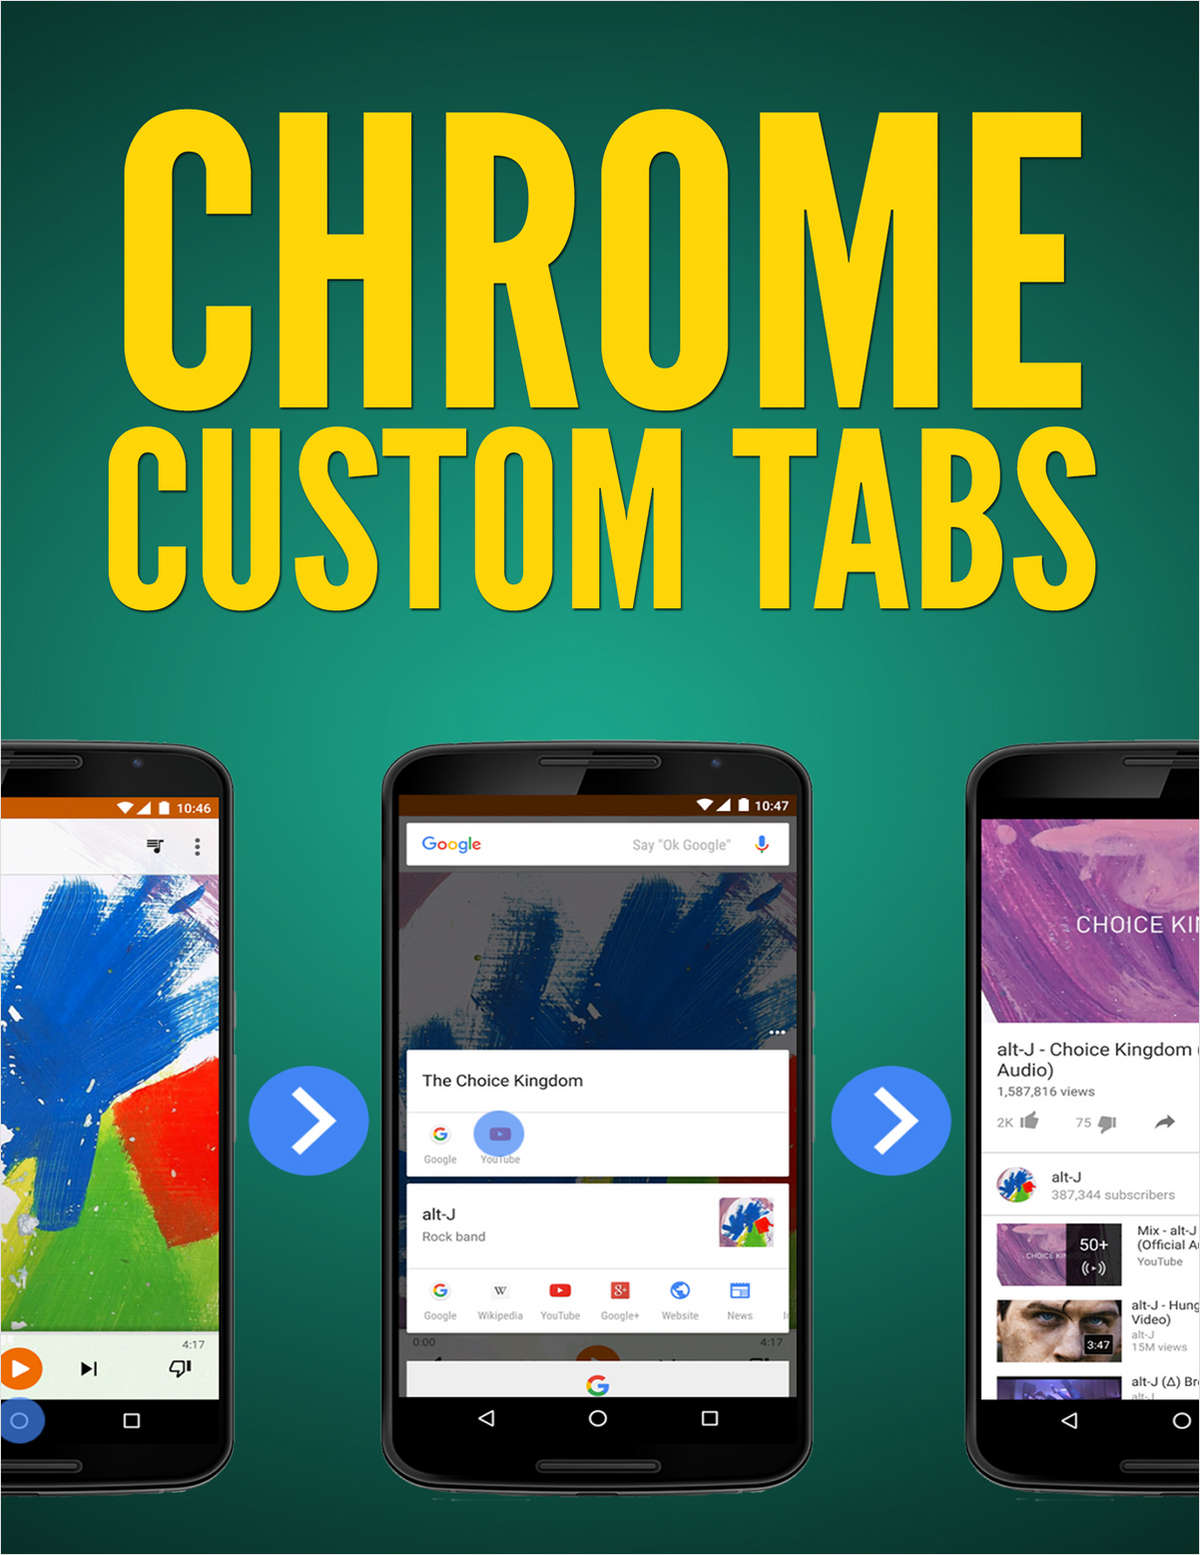 Chrome Custom Tabs